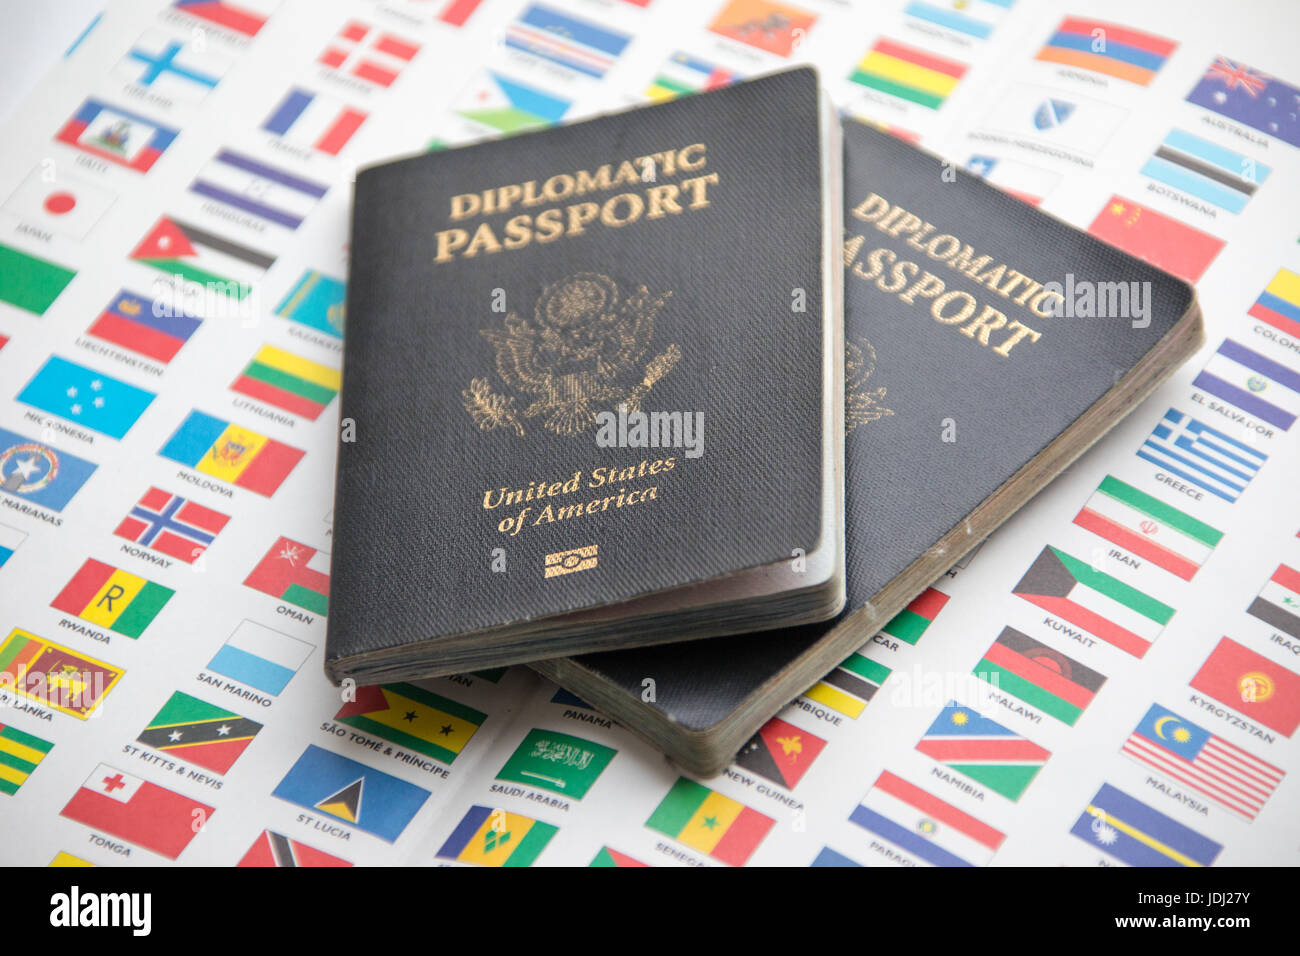 Diplomatic Passport of the United States of America - Stock Image